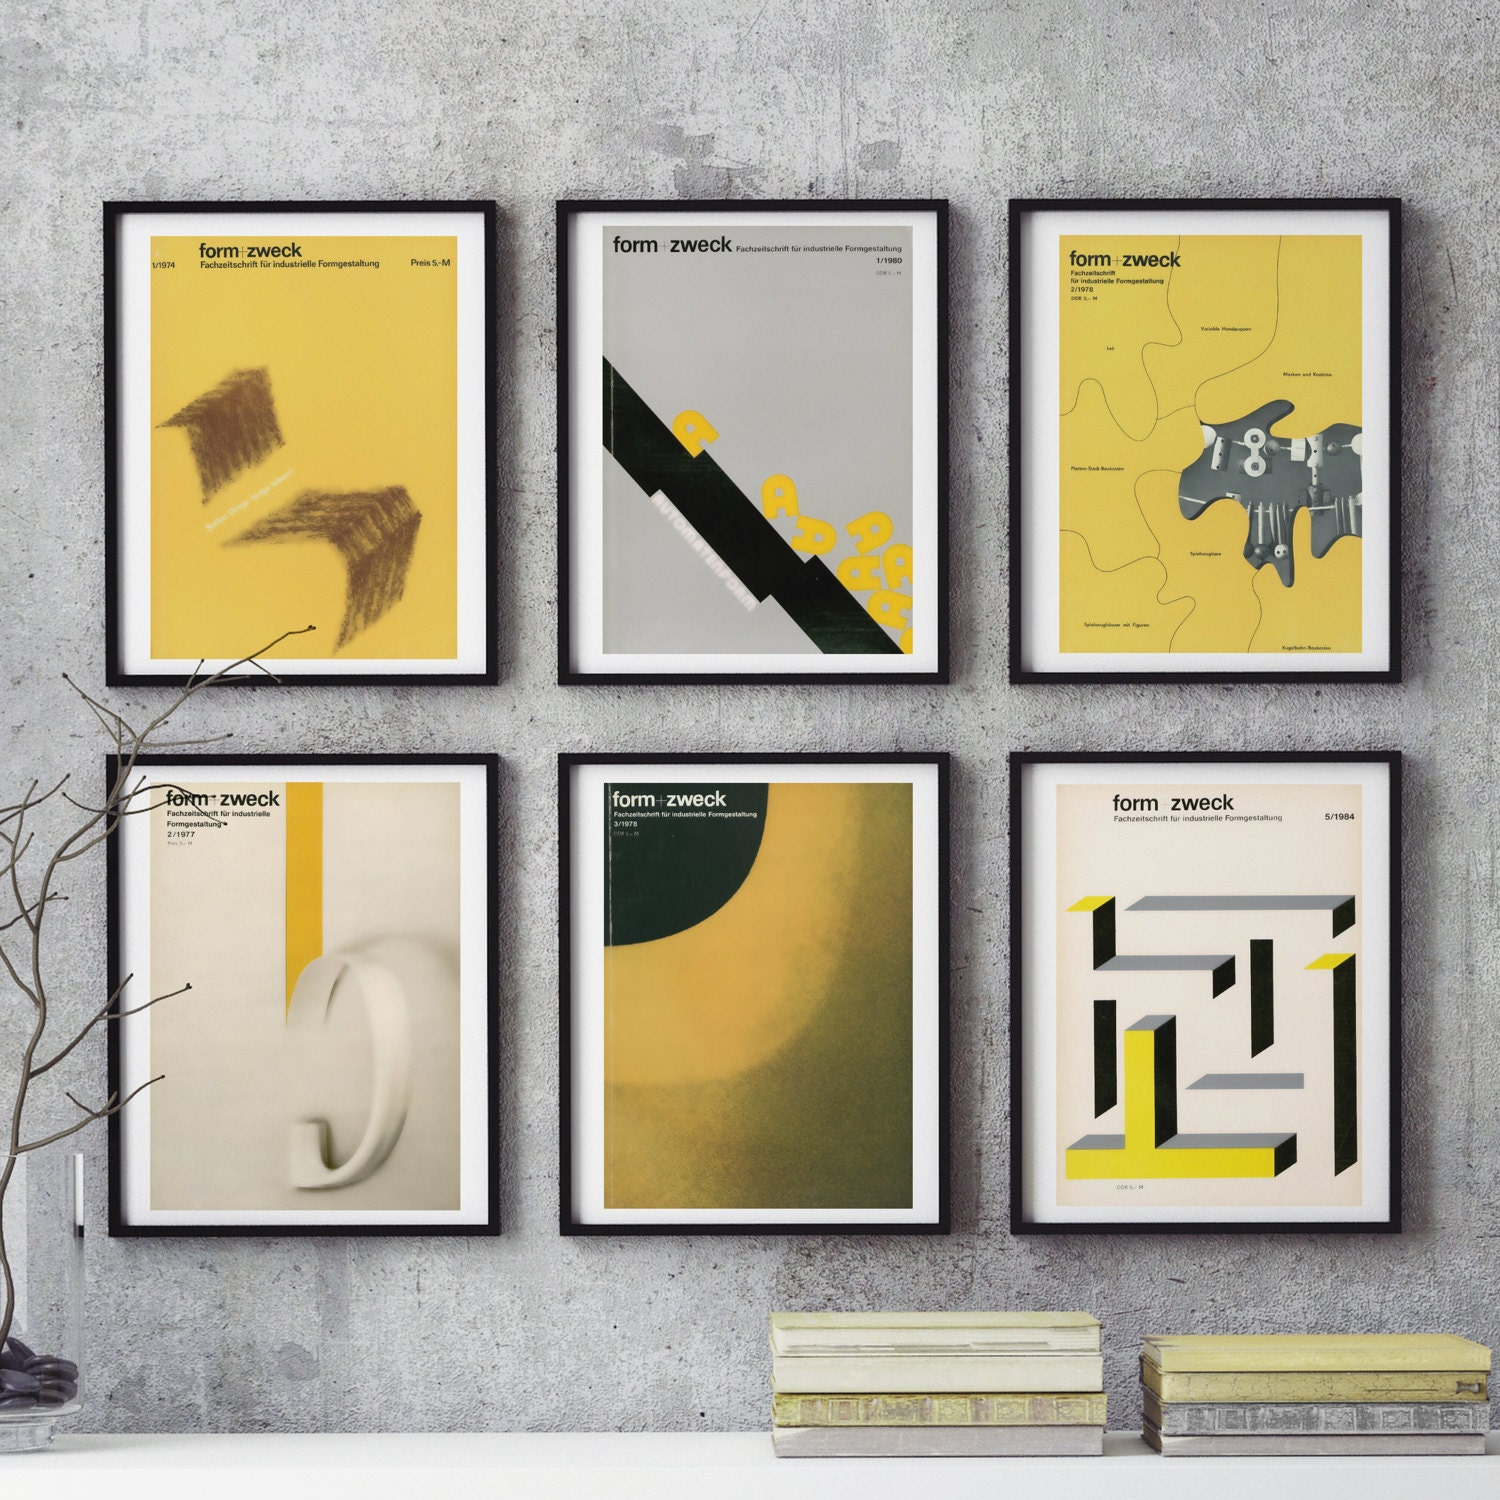 Mid Century Bauhaus Home Decor 6 Piece Wall Art East German Graphic Design YELLOWS Form Zweck Print Industrial Magazine Unique Gift